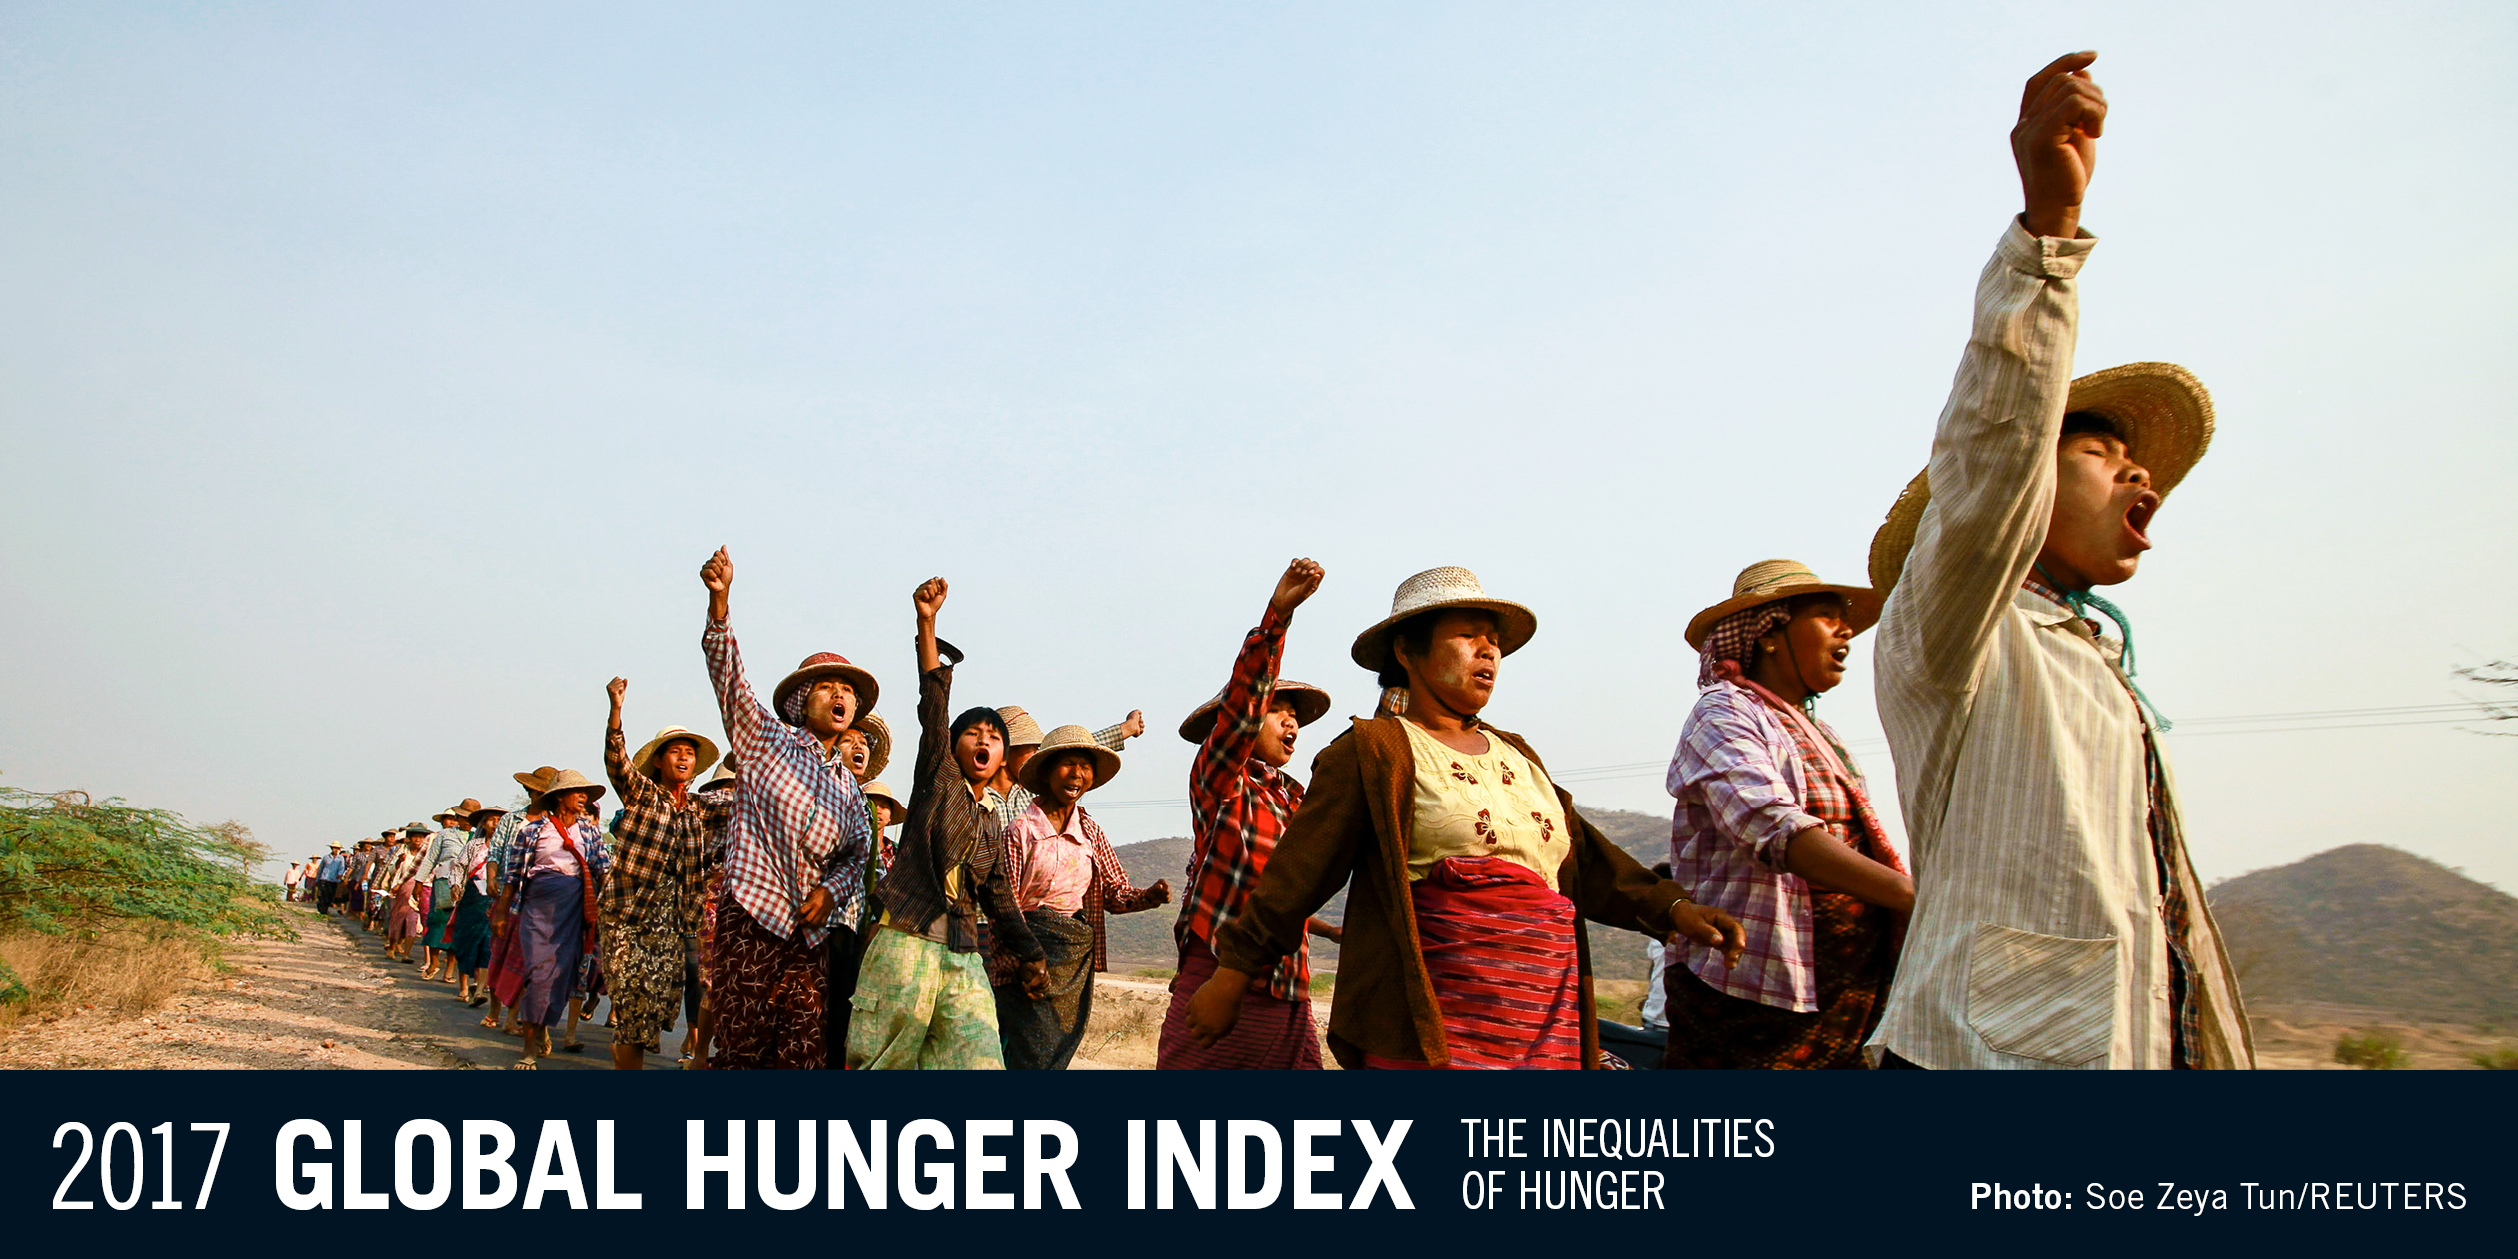 banner of the 2016 Global Hunger Index; links to topic page on IFPRI website